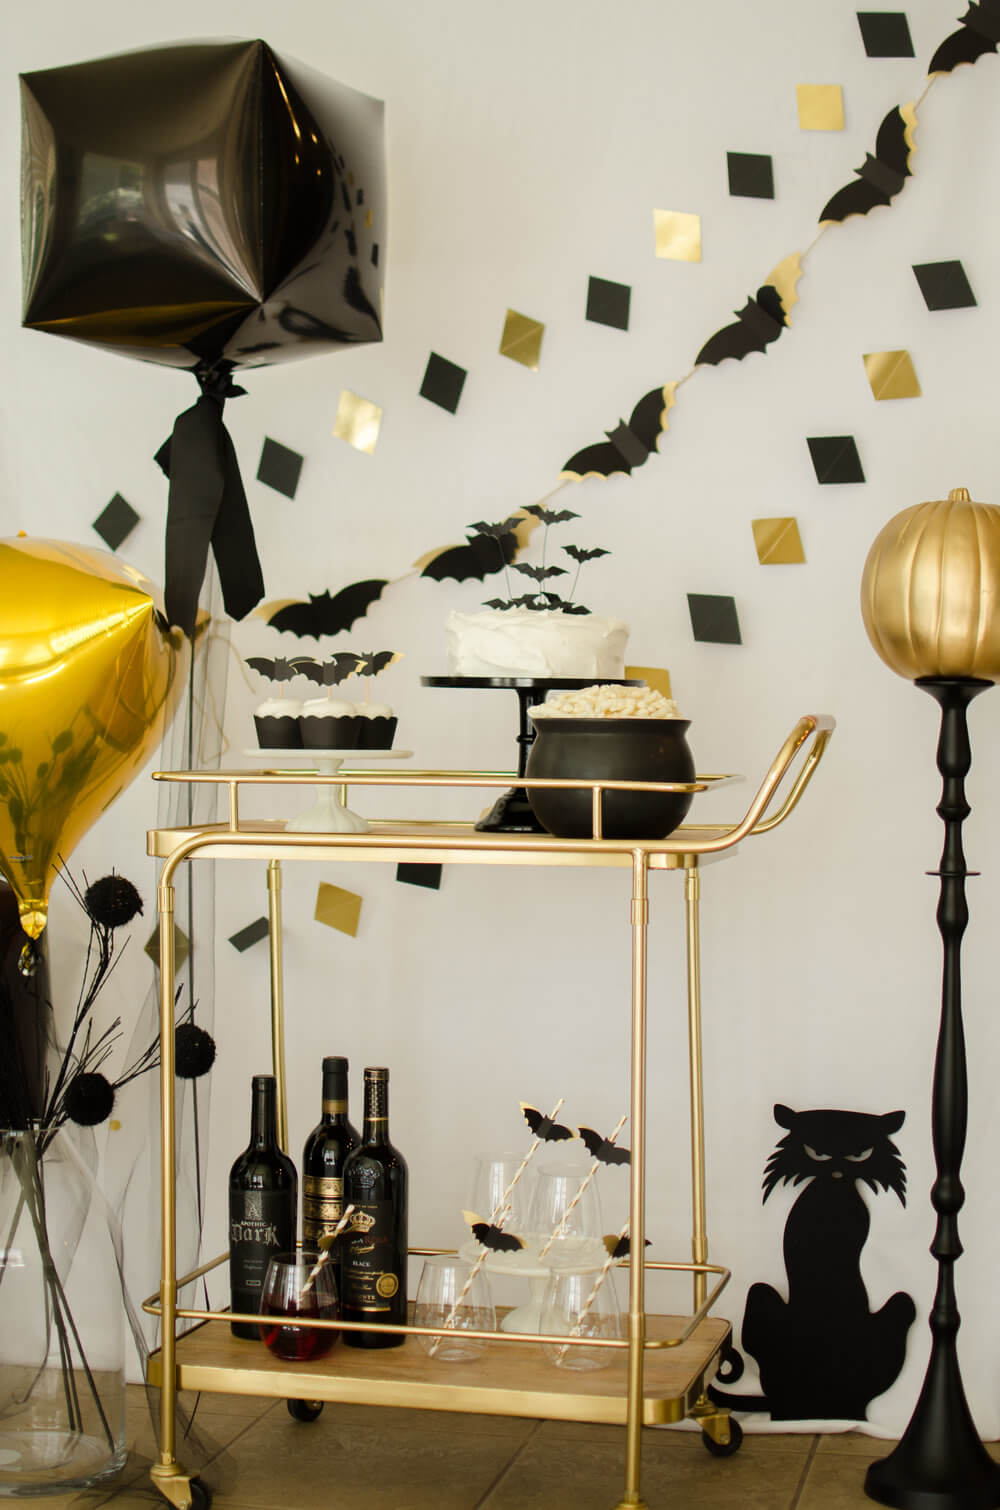 A color palette of Black, White, and Gold add spooky elegance to this adult themed Halloween party. Click to see more from this Bar Cart styled by party stylist Carolina of Mint Event Design. #partyideas #partyinspiration #halloween #barcart #barcartdecor #partystyling